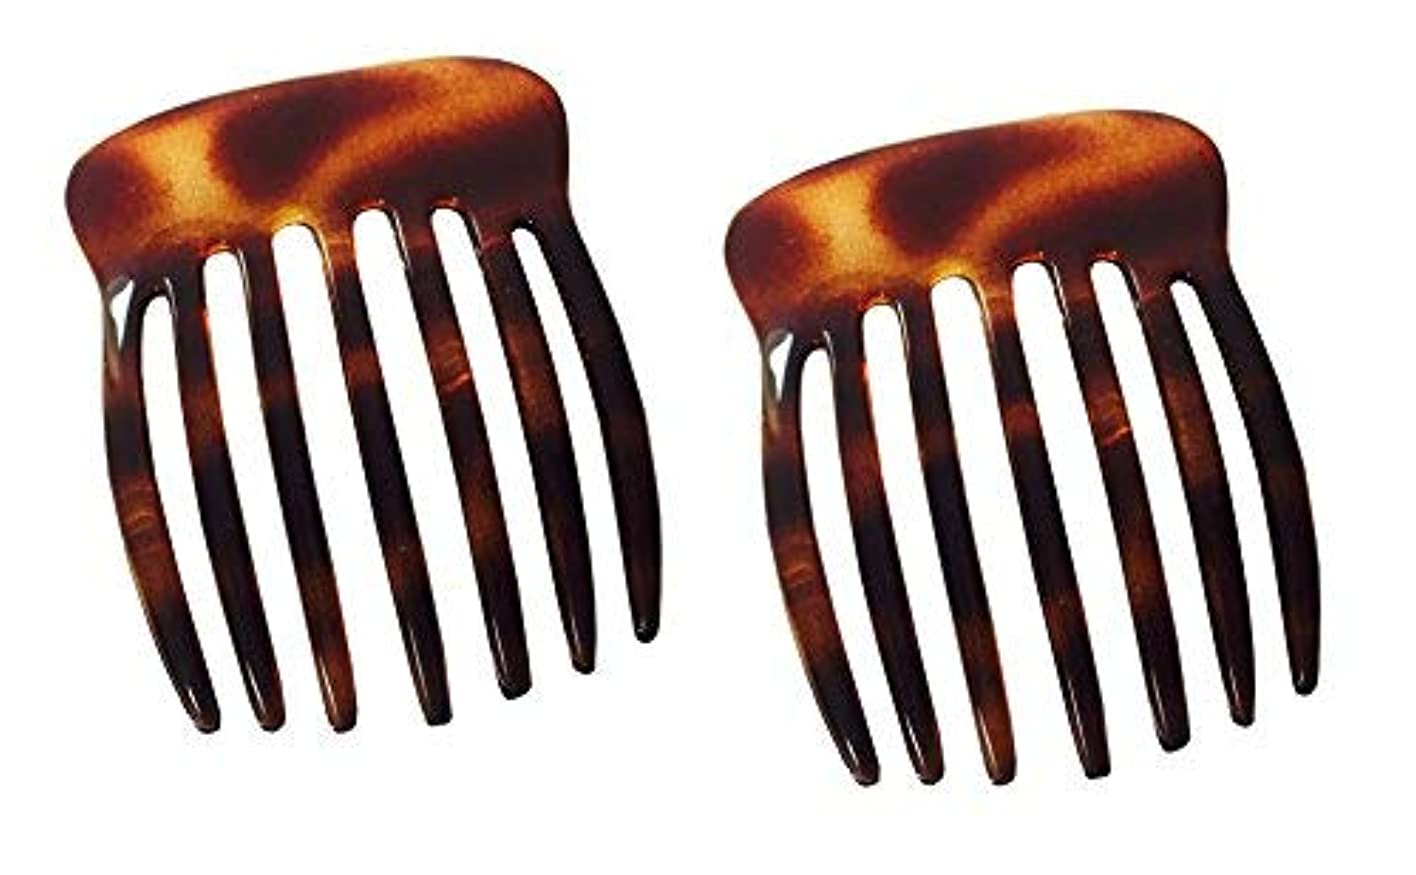 勃起慣らす貫通するParcelona French Fingers Seven Teeth Large 2 Pieces Celluloid Acetate Tortoise Shell Hair Side Hair Combs [並行輸入品]